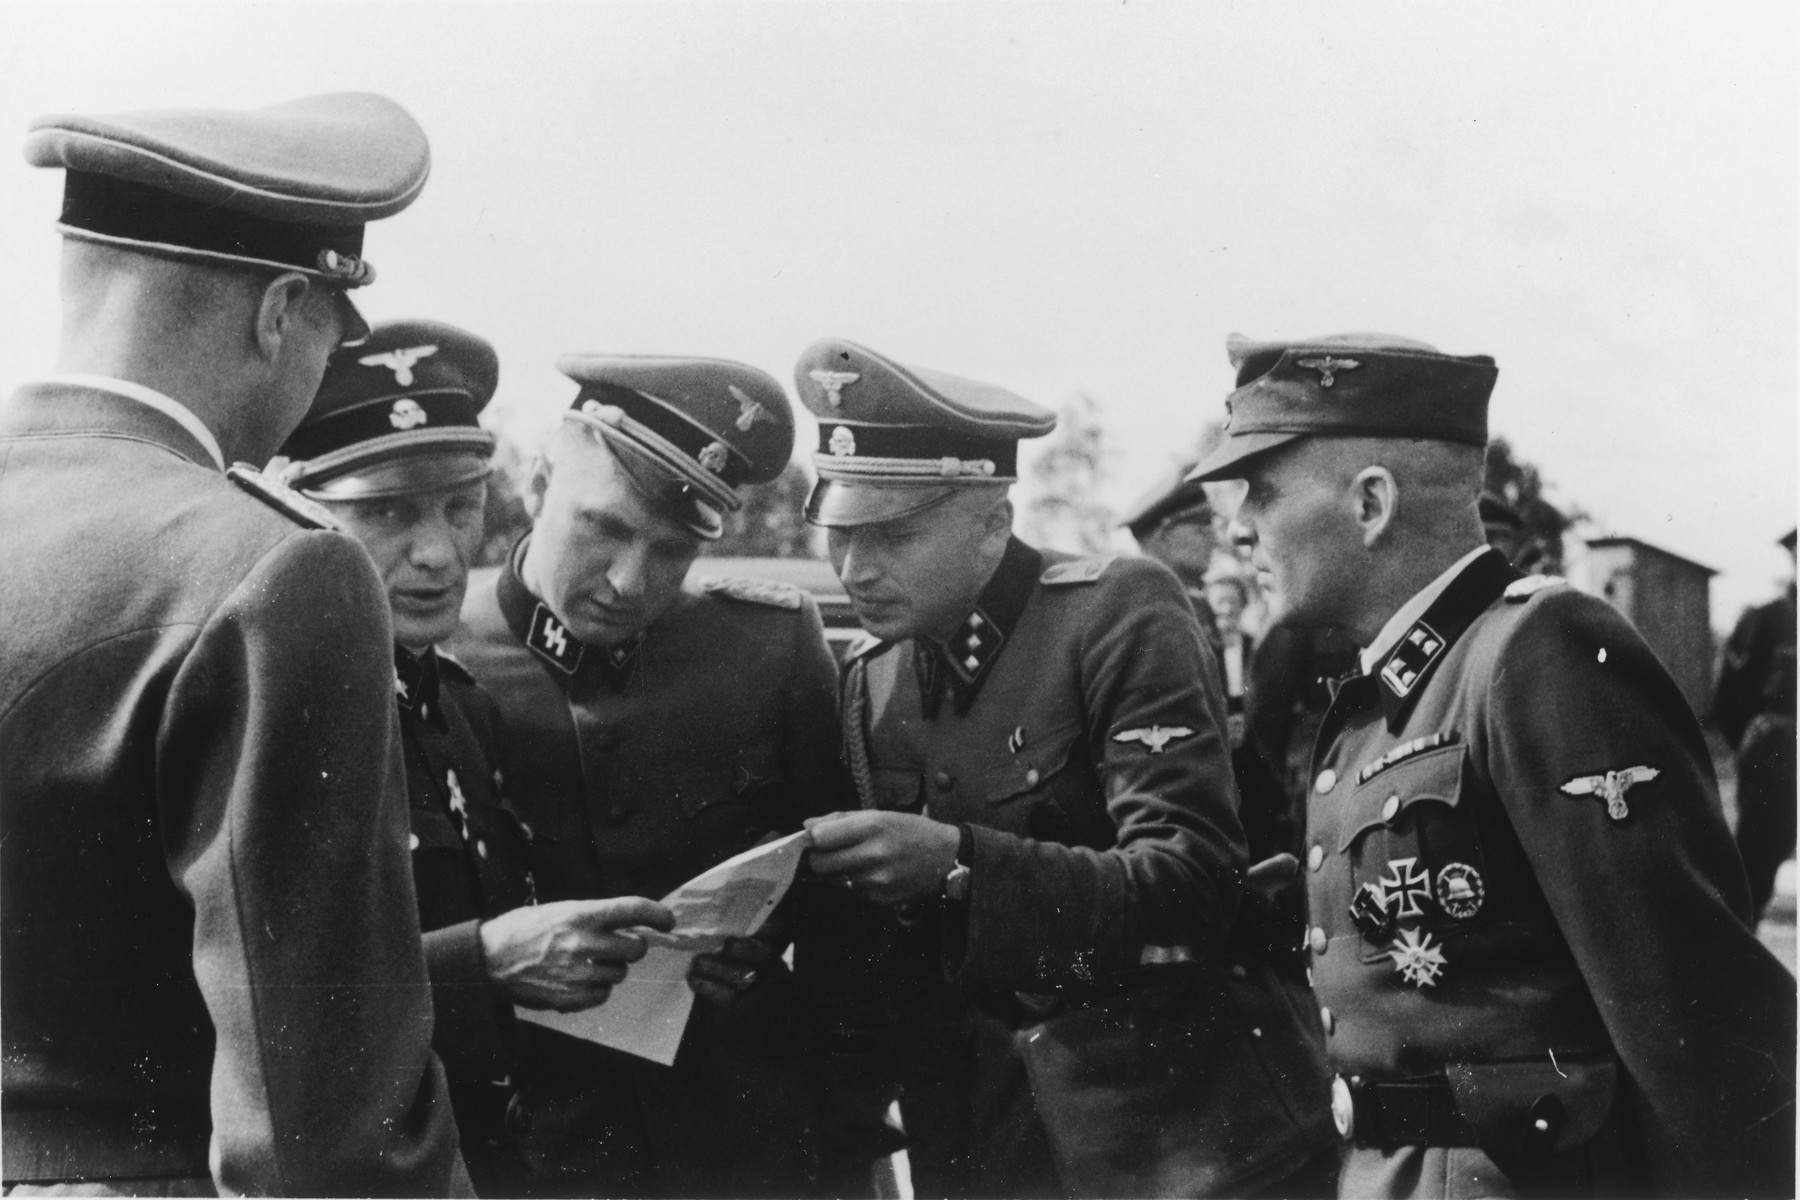 Several SS officers study a document during the dedication of the new SS hospital.  Pictured facing the camera left to right are Dr. Enno Lolling, Commandant Richard Baer and Adjutant Karl Hoecker and former Commandant Rudolf Hoess.  Standing with his back to the camera is probably Dr. Eduard Wirths.